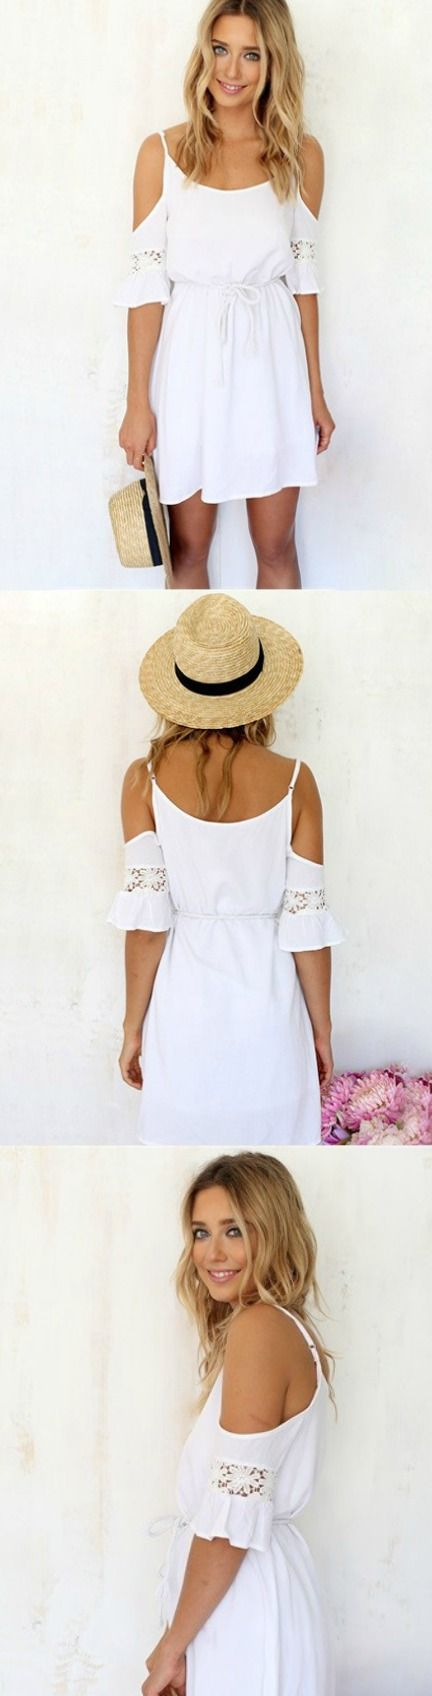 White Lace Cold Shoulder Dress! Click The Image To Buy It Now or Tag Someone You Want To Buy This For. #WhiteMiniDress